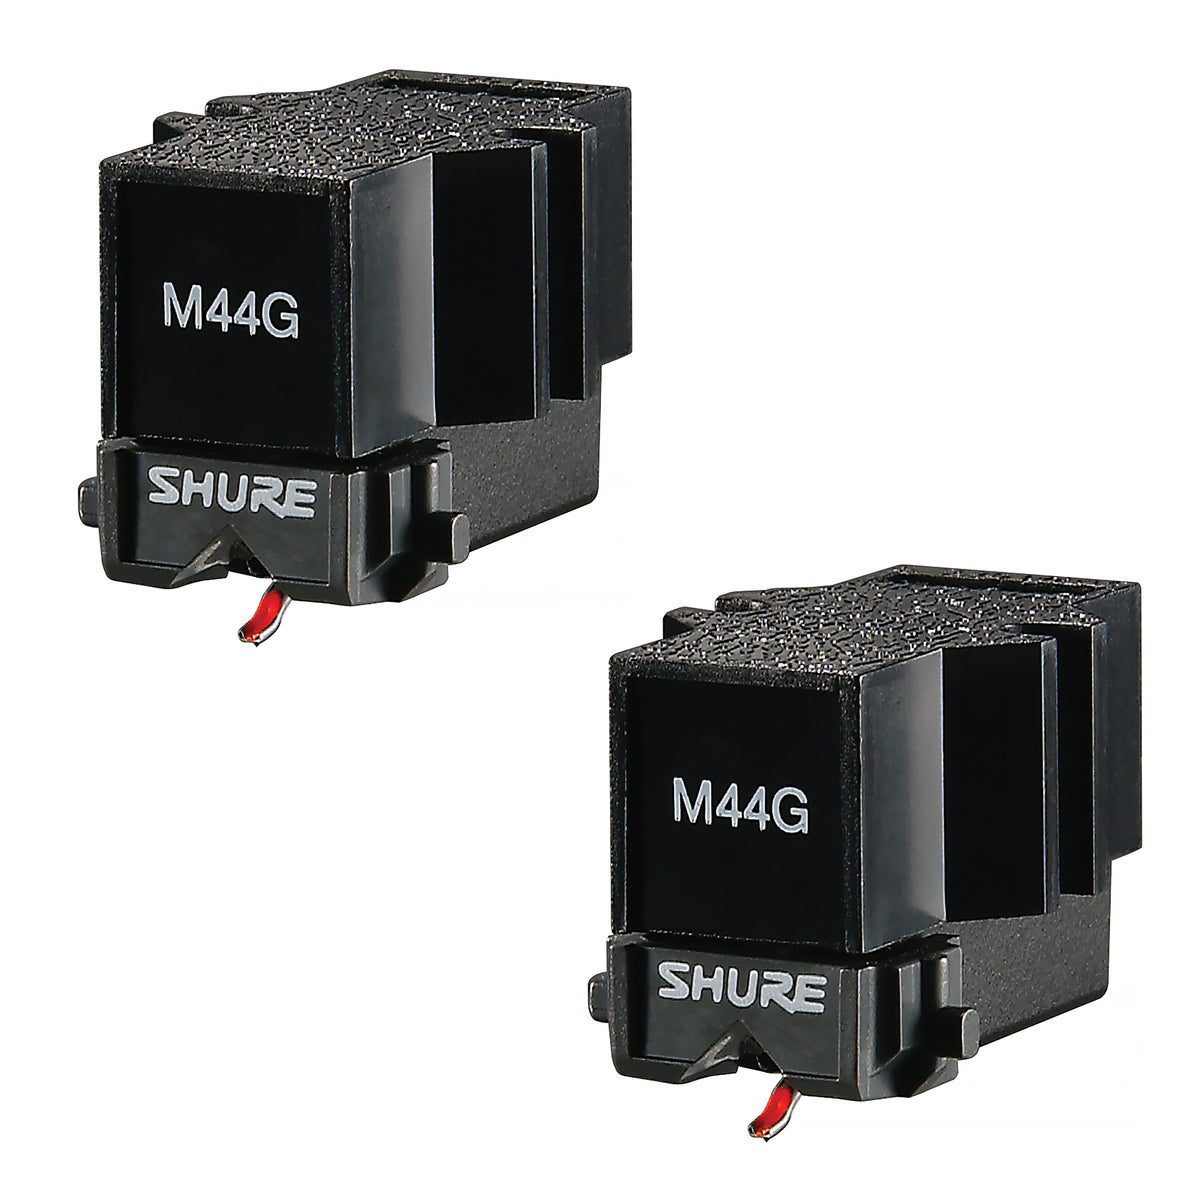 Shure: M44G Cartridge - Twin Pack